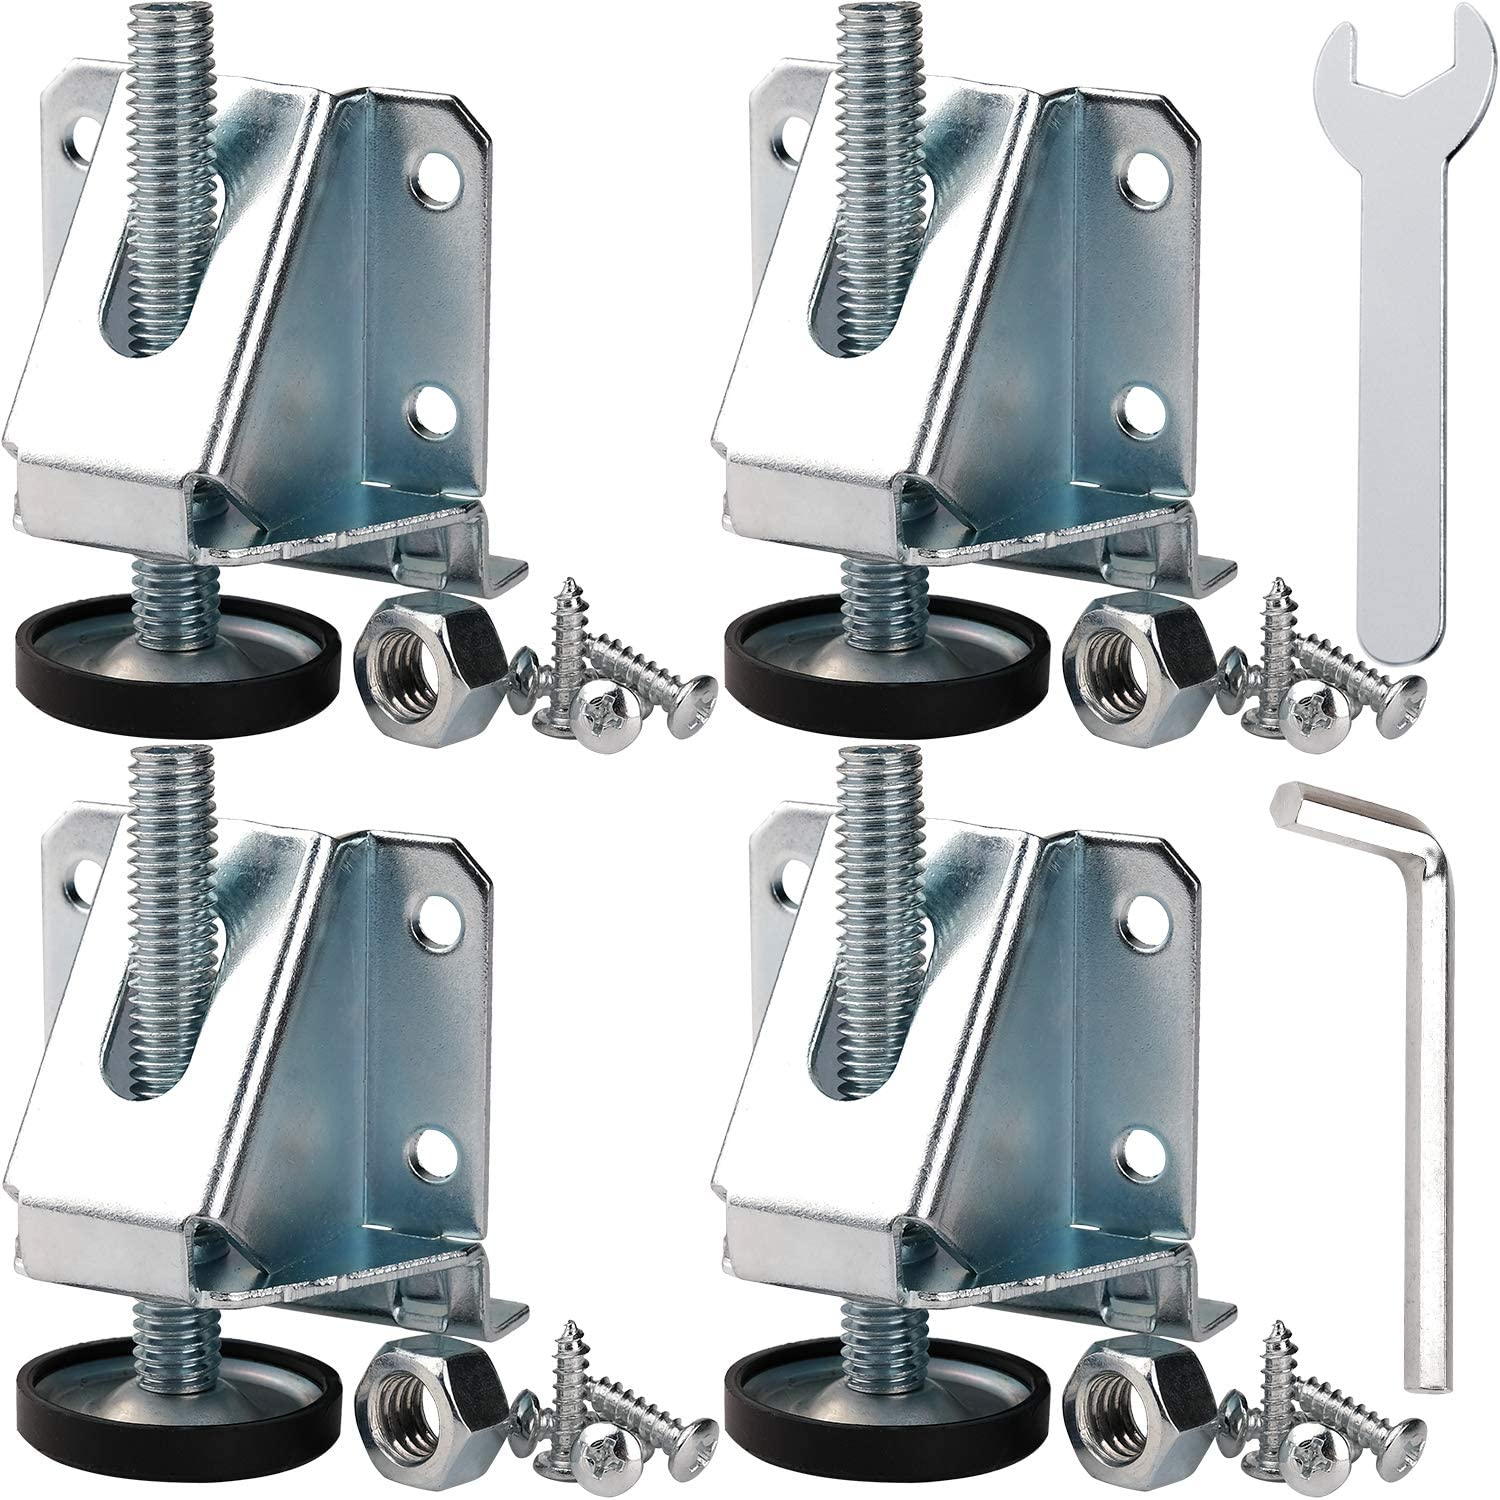 Anwenk Leveling Feet Heavy Duty Inexpensive Popular product Levelers Furniture Ta Adjustable